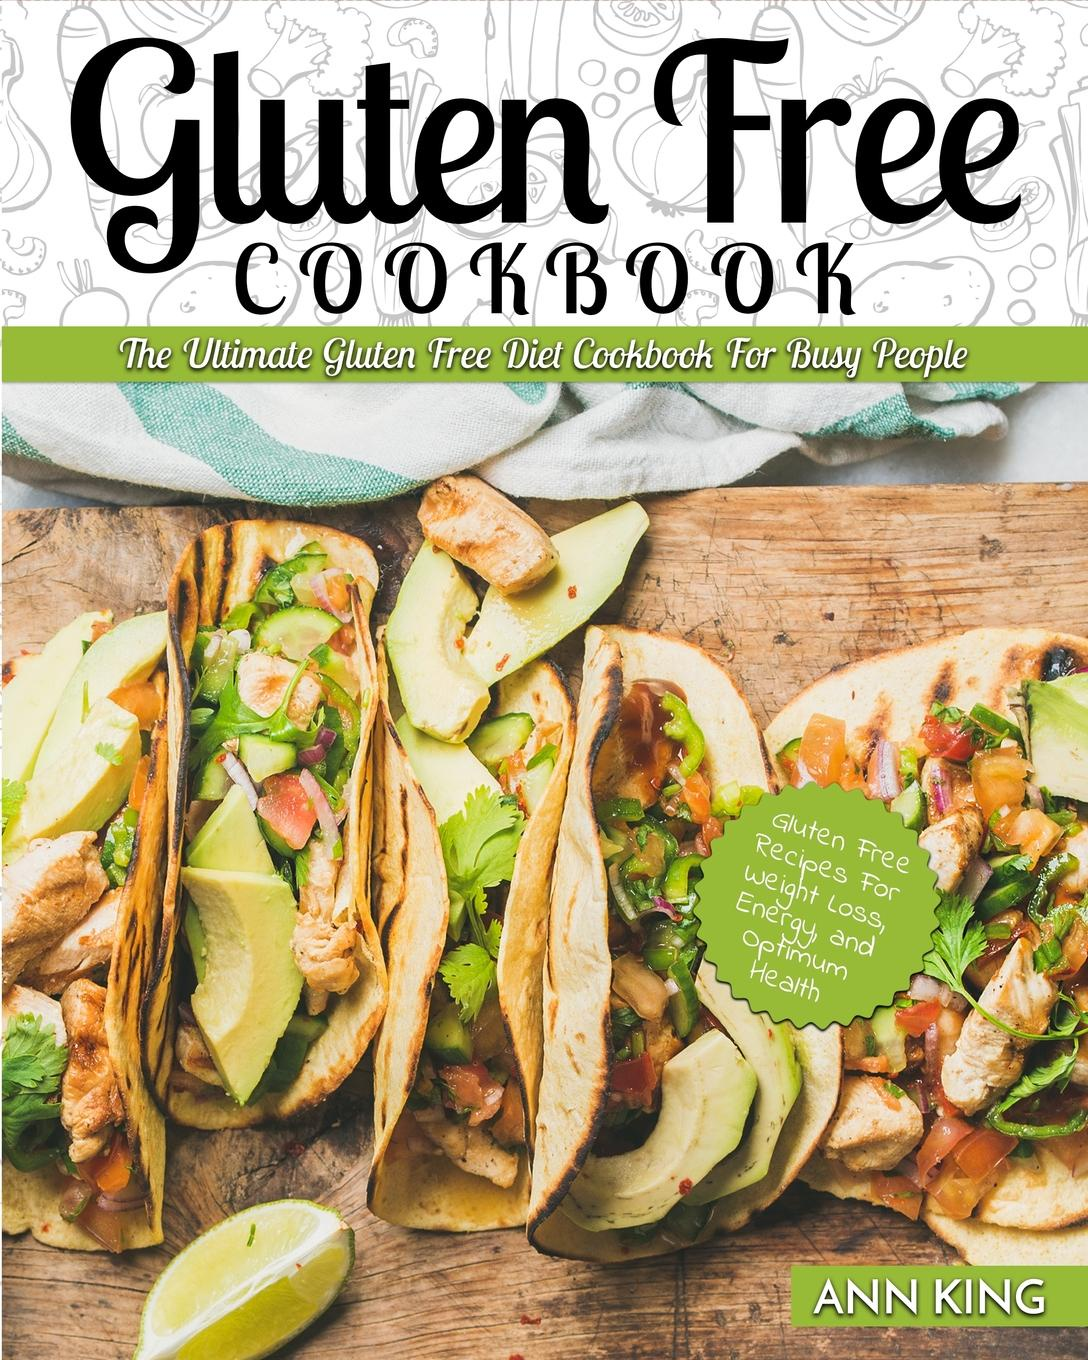 Ann King Gluten Free Cookbook. The Ultimate Gluten Free Diet Cookbook for Busy People - Gluten Free Recipes for Weight Loss, Energy, and Optimum Health